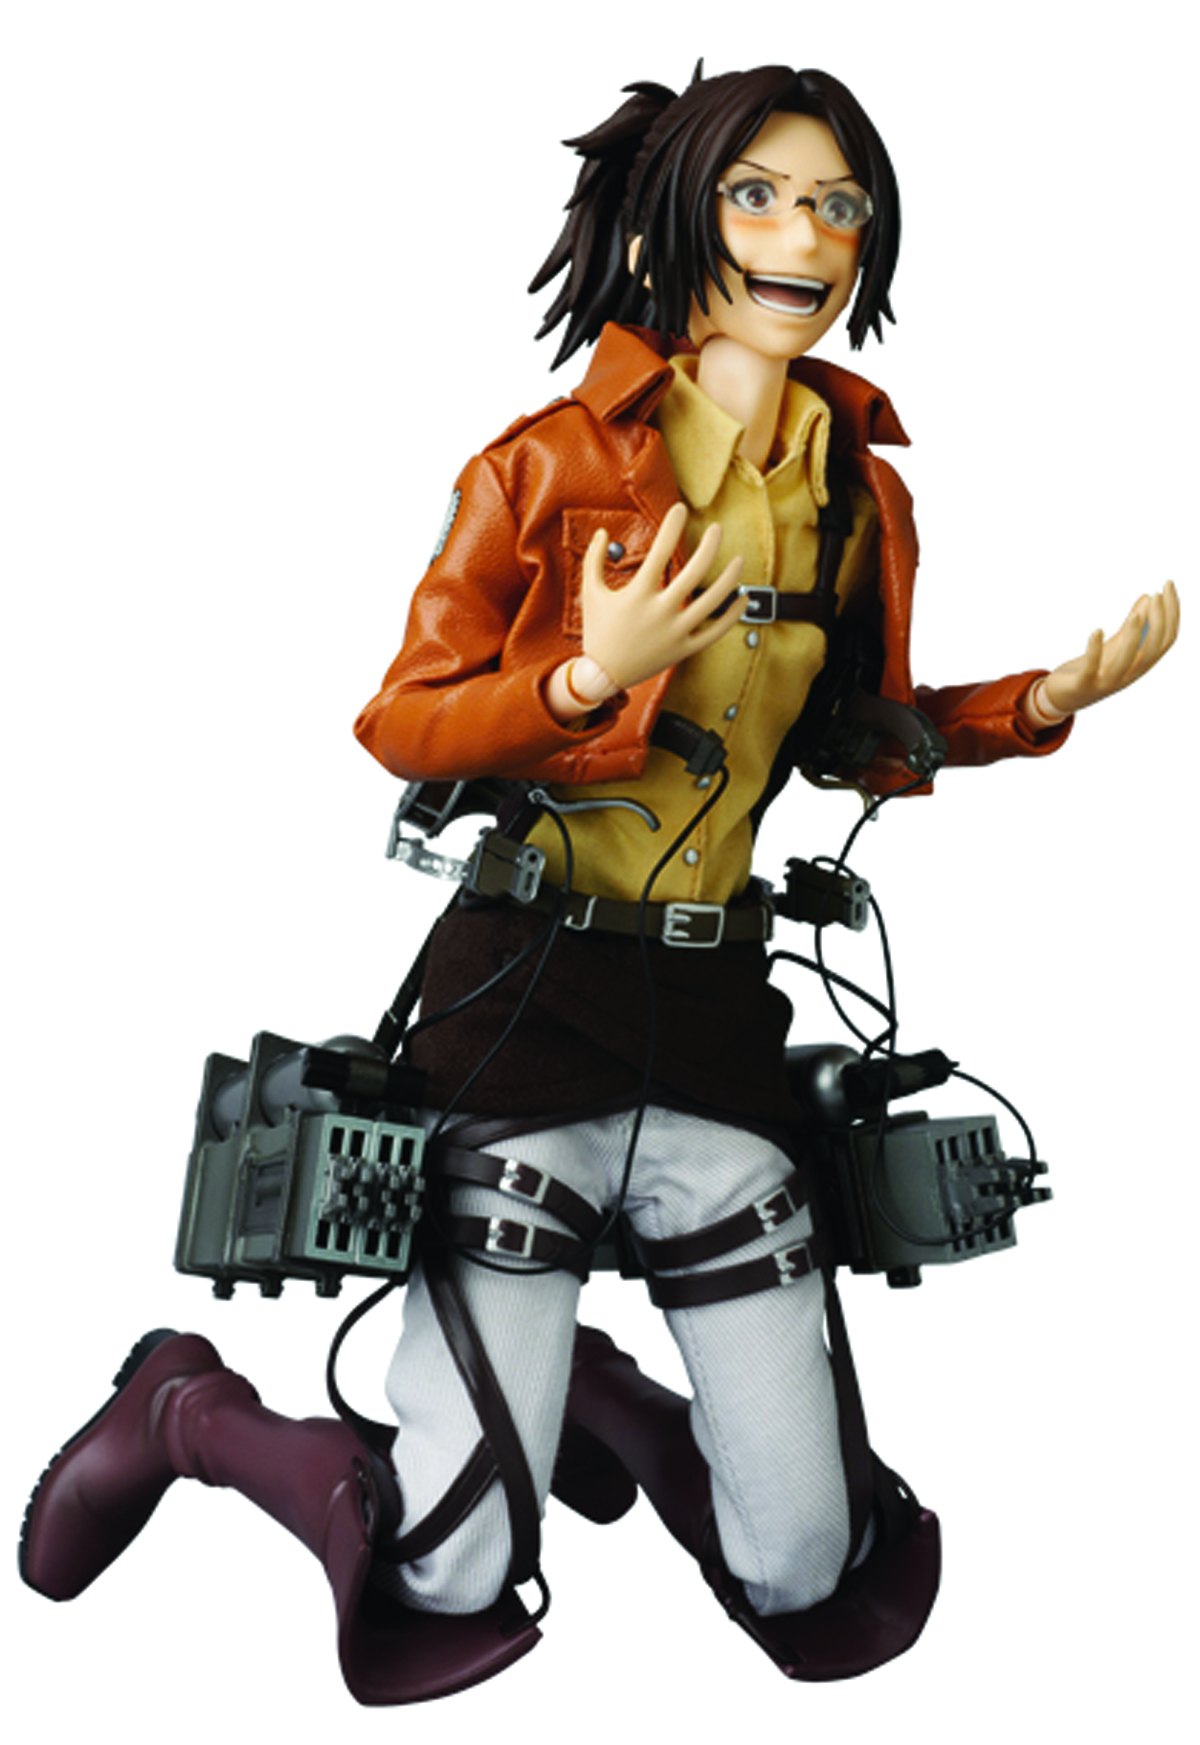 ATTACK ON TITAN HANJI ZOE RAH